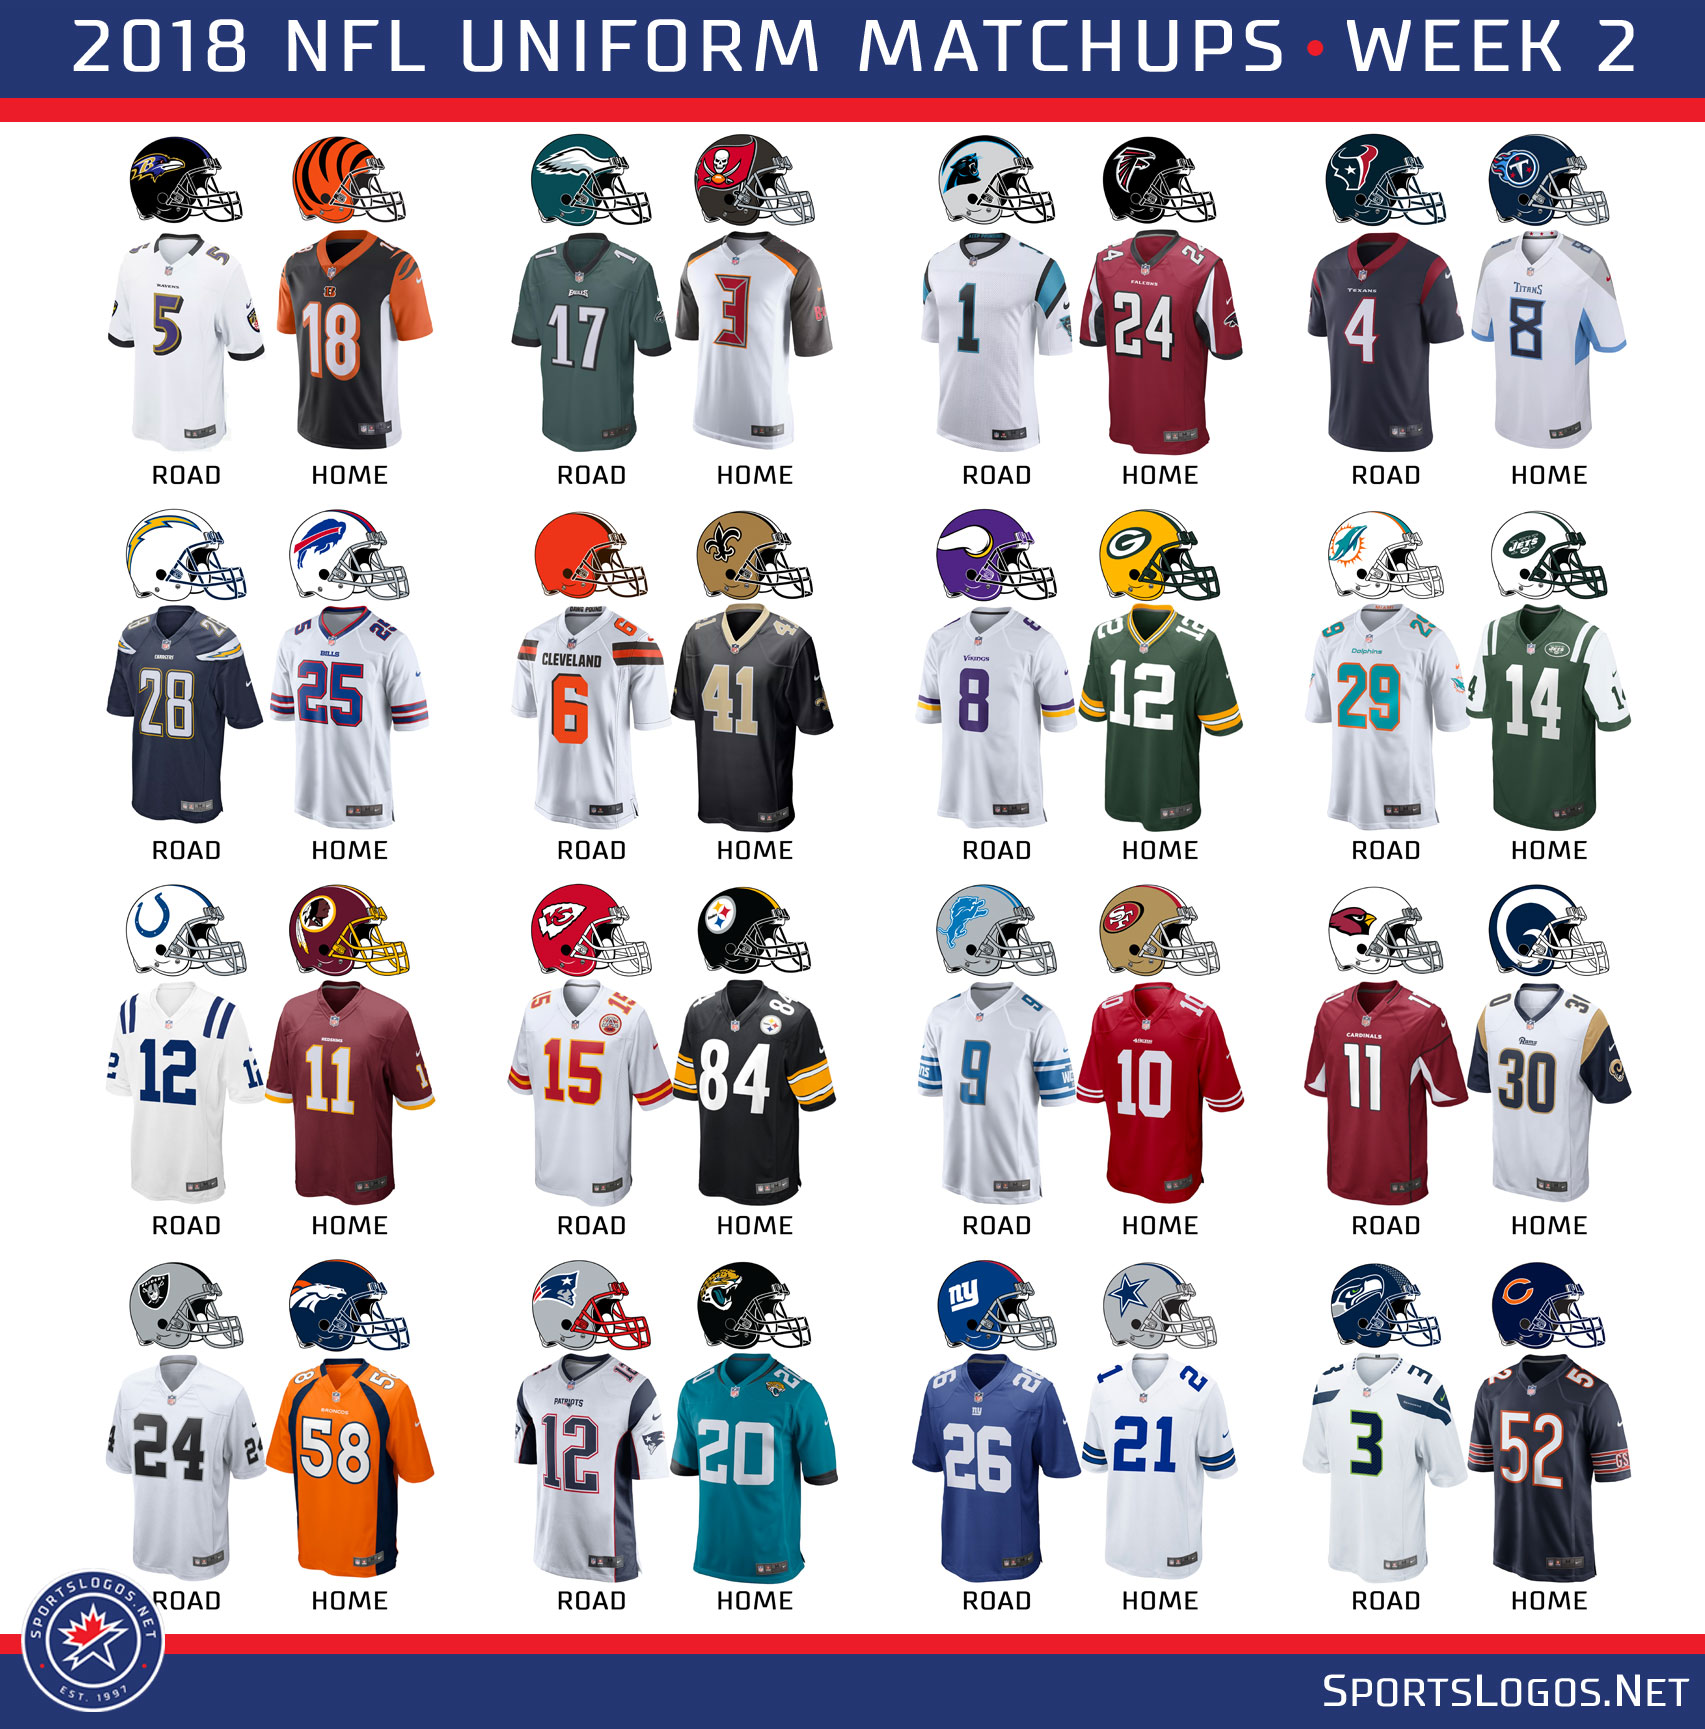 separation shoes ae46e ed0cf 2018 NFL Week 2 Uniform Matchups | Chris Creamer's ...